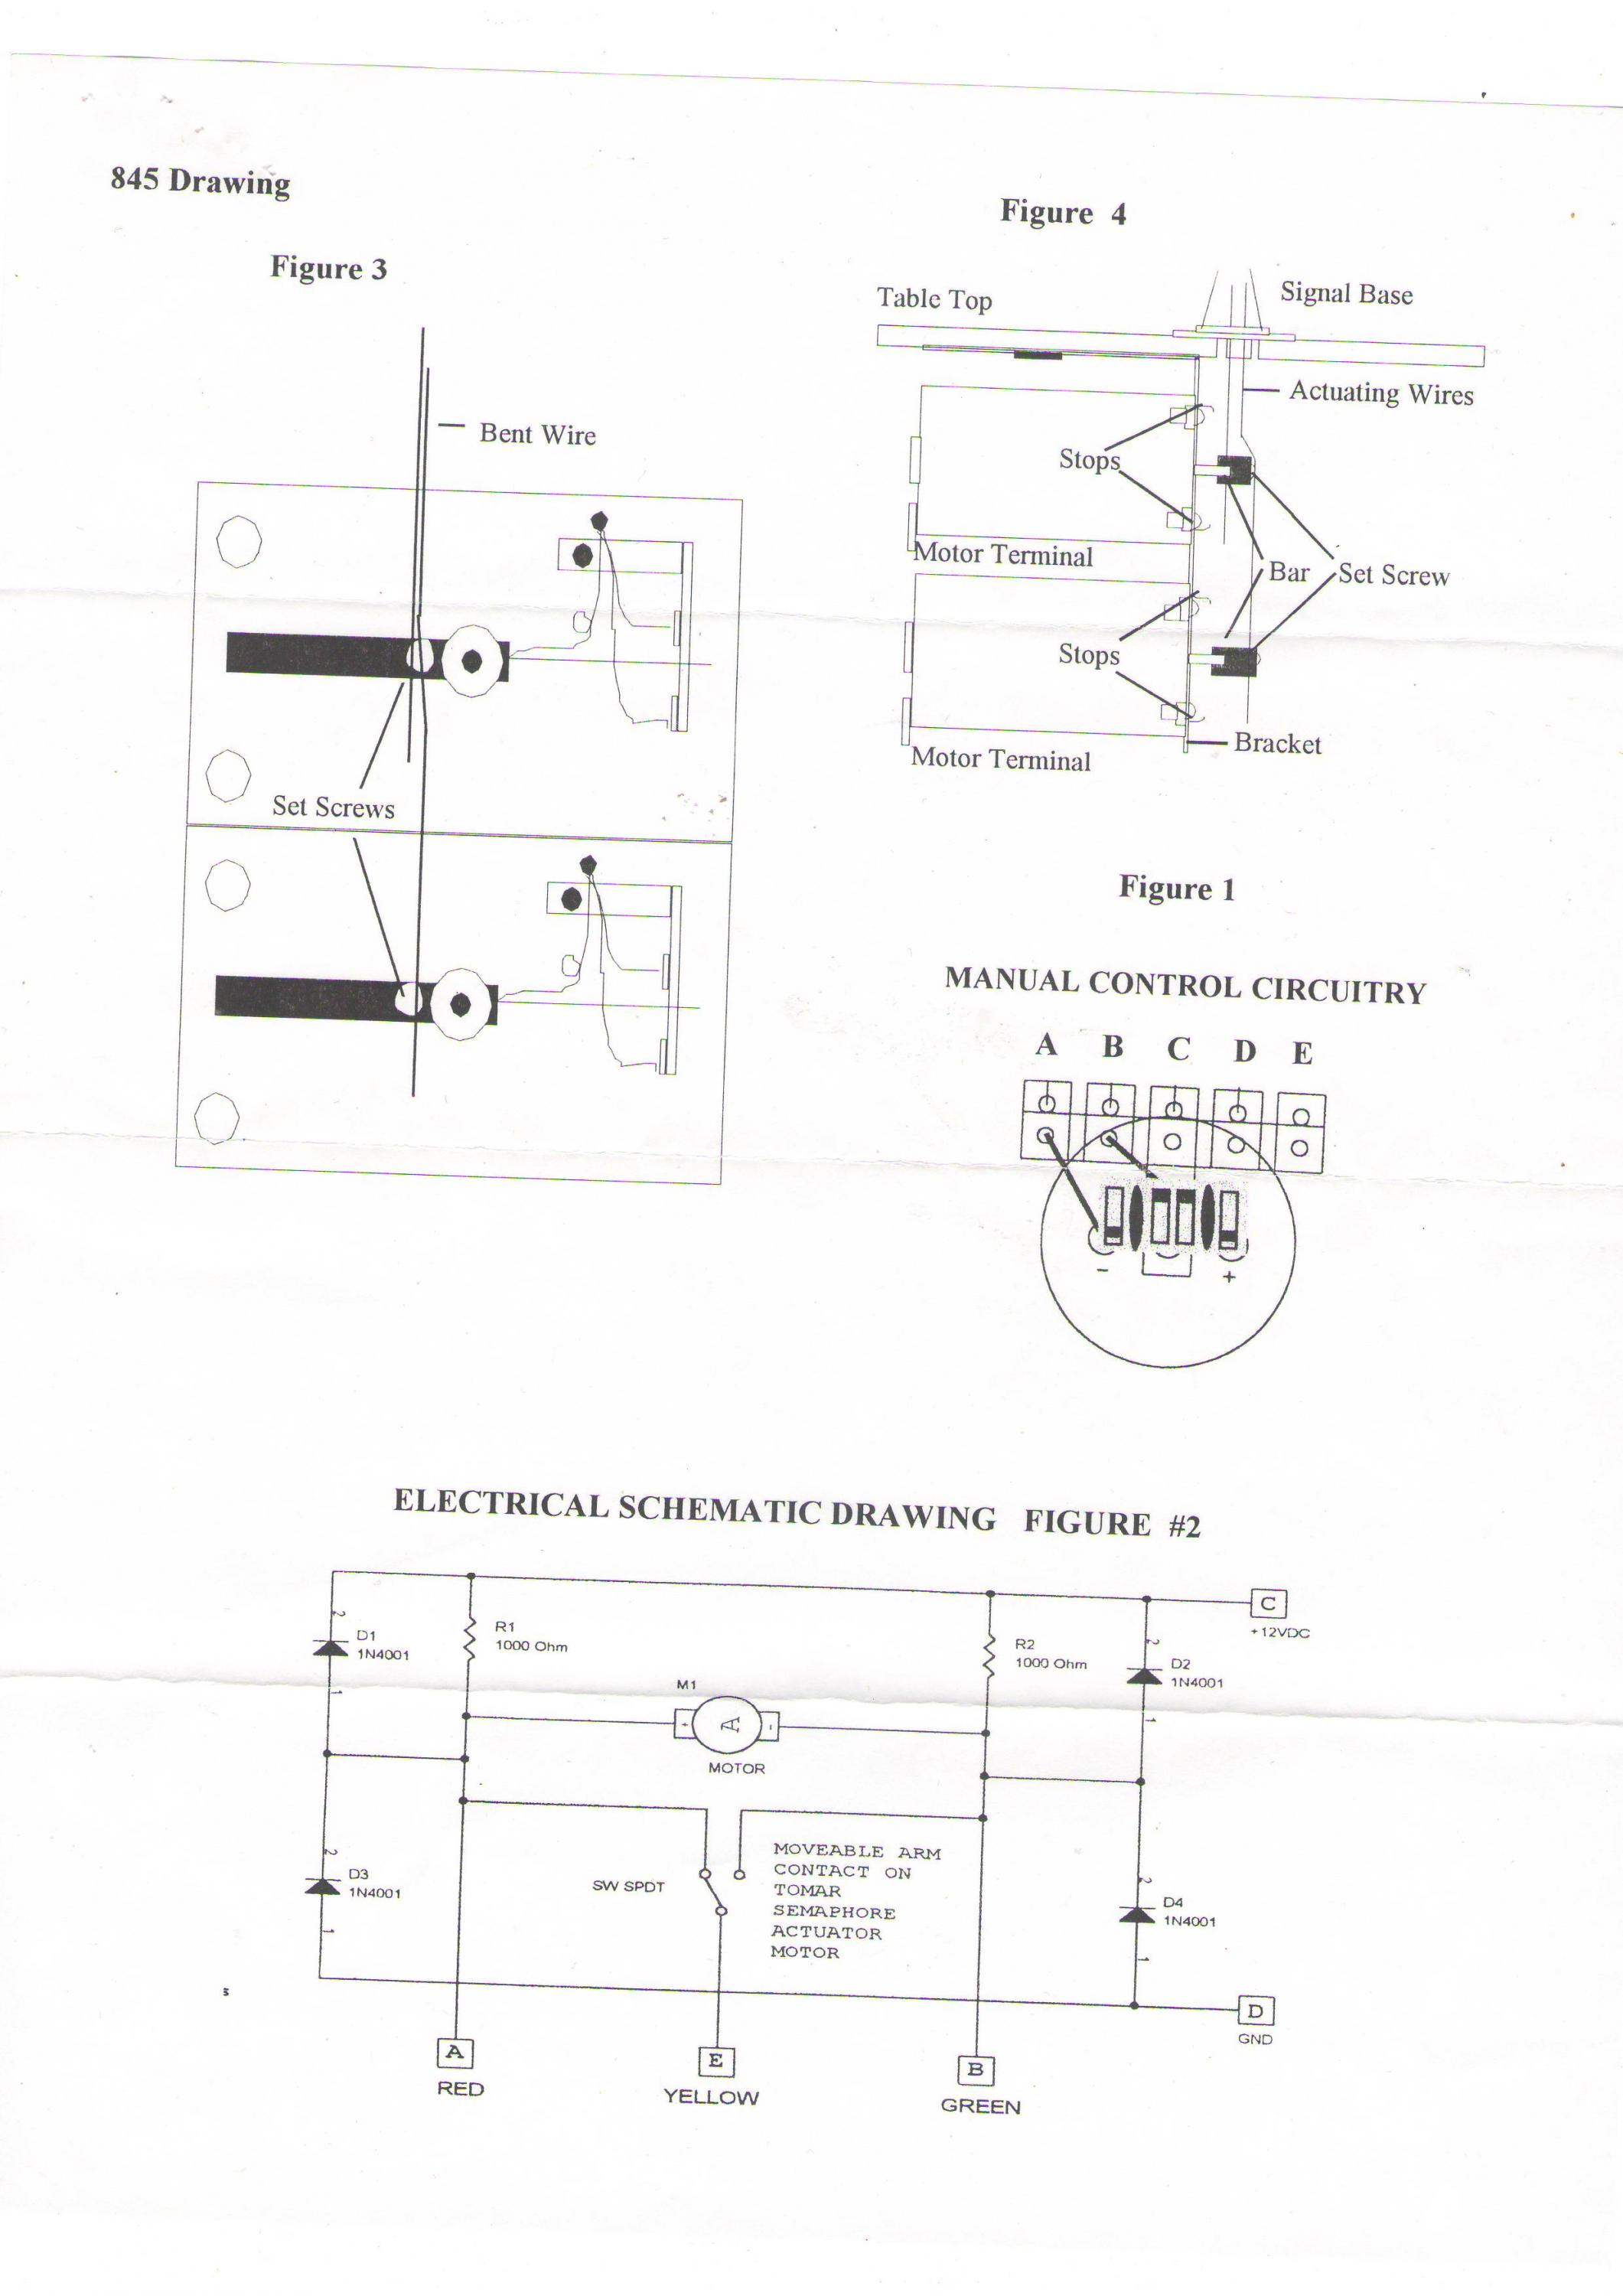 tomar wire diagram wiring library heavy duty relay diagram tomar_h 845_drawing schematic jpg